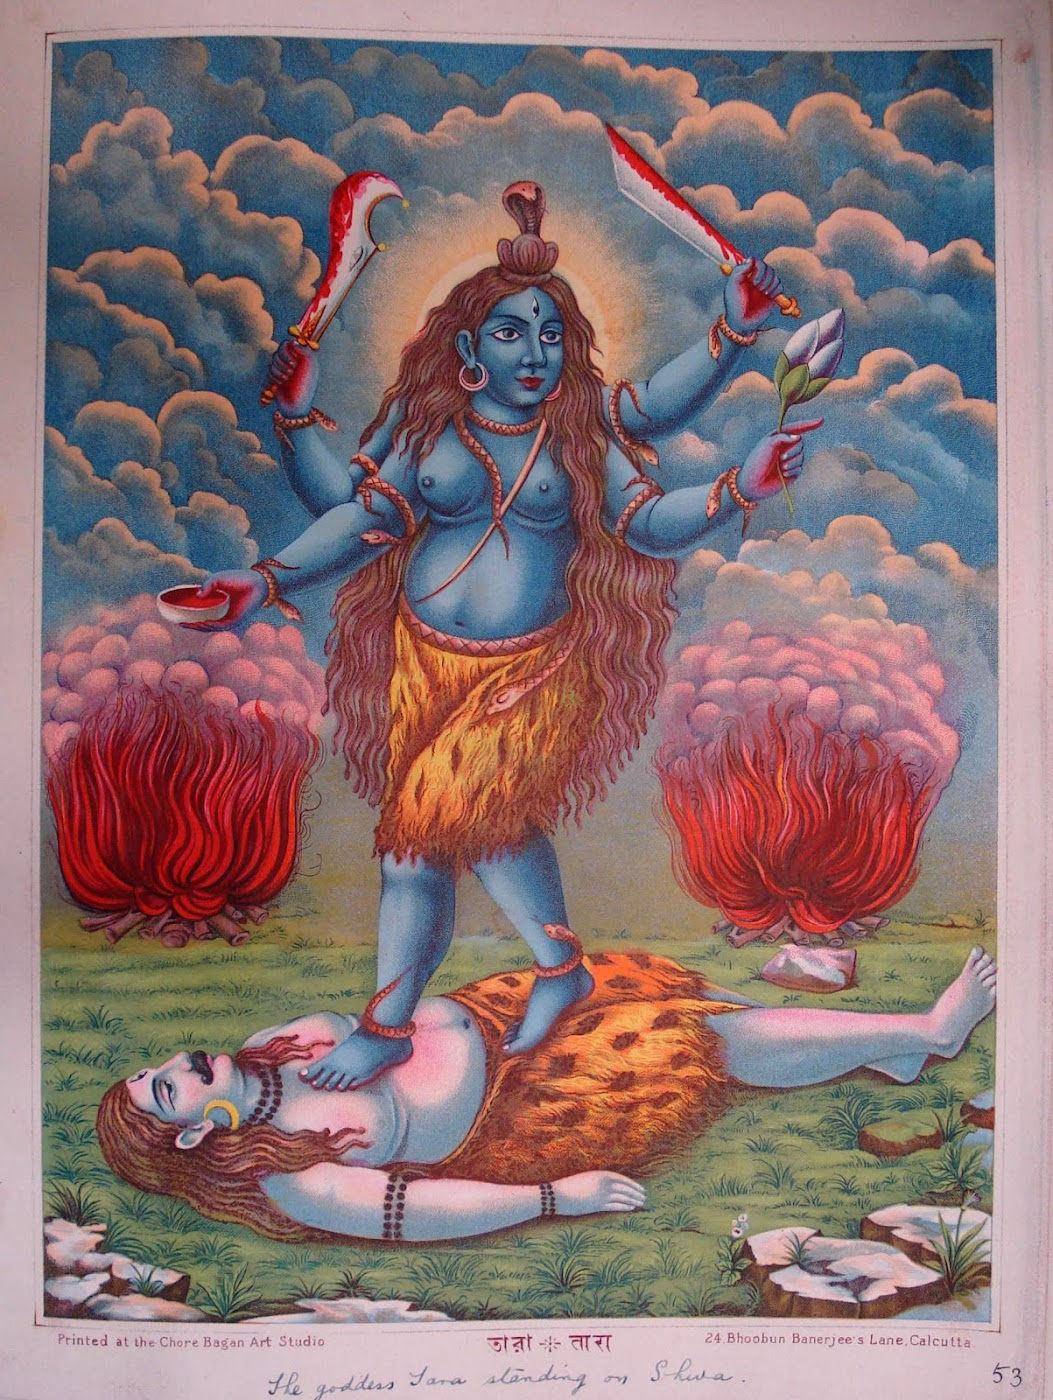 The Goddess Tara Standing on Shiva - Lithograph Print, Chore Bagan Art Studio Circa 1895